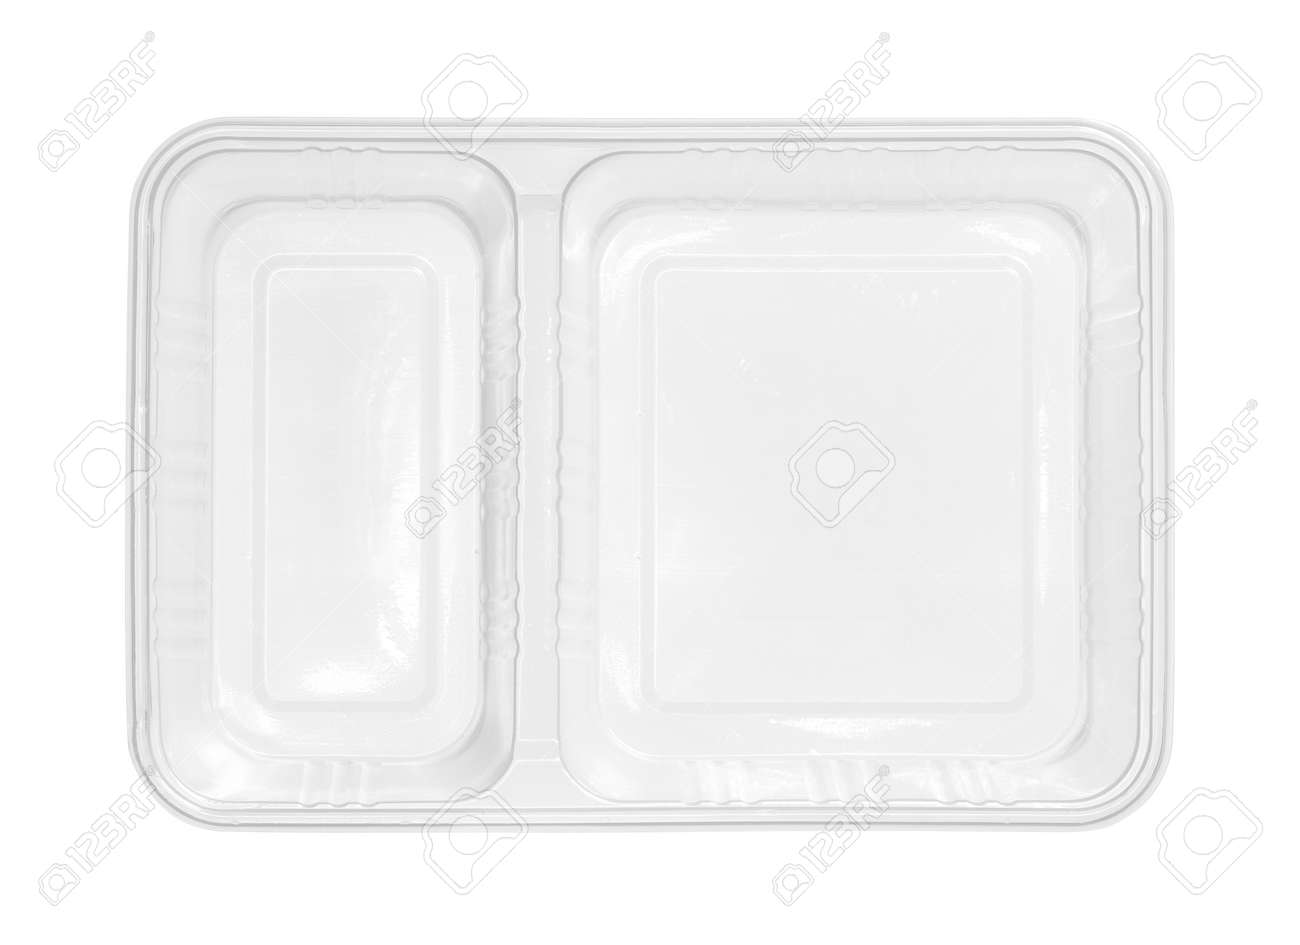 Plastic food box two compartment separated top view isolated on white background - 157297123